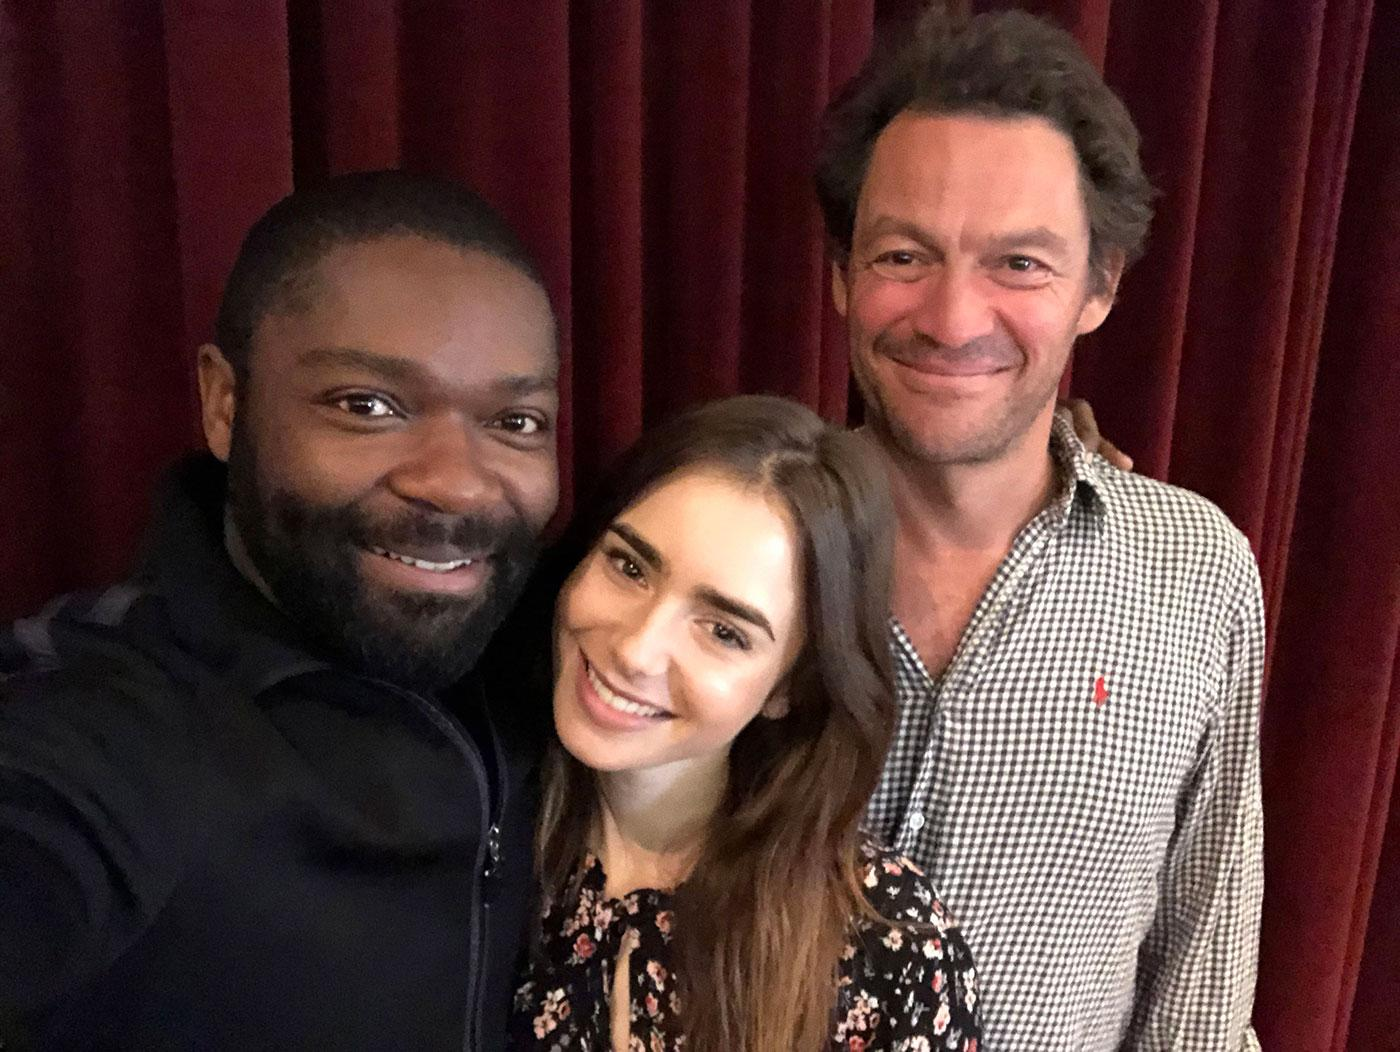 David Oyelowo, Lily Collins, and Dominic West while filming 'Les Misérables.' Photo: BBC/Lookout Point/David Oyelowo